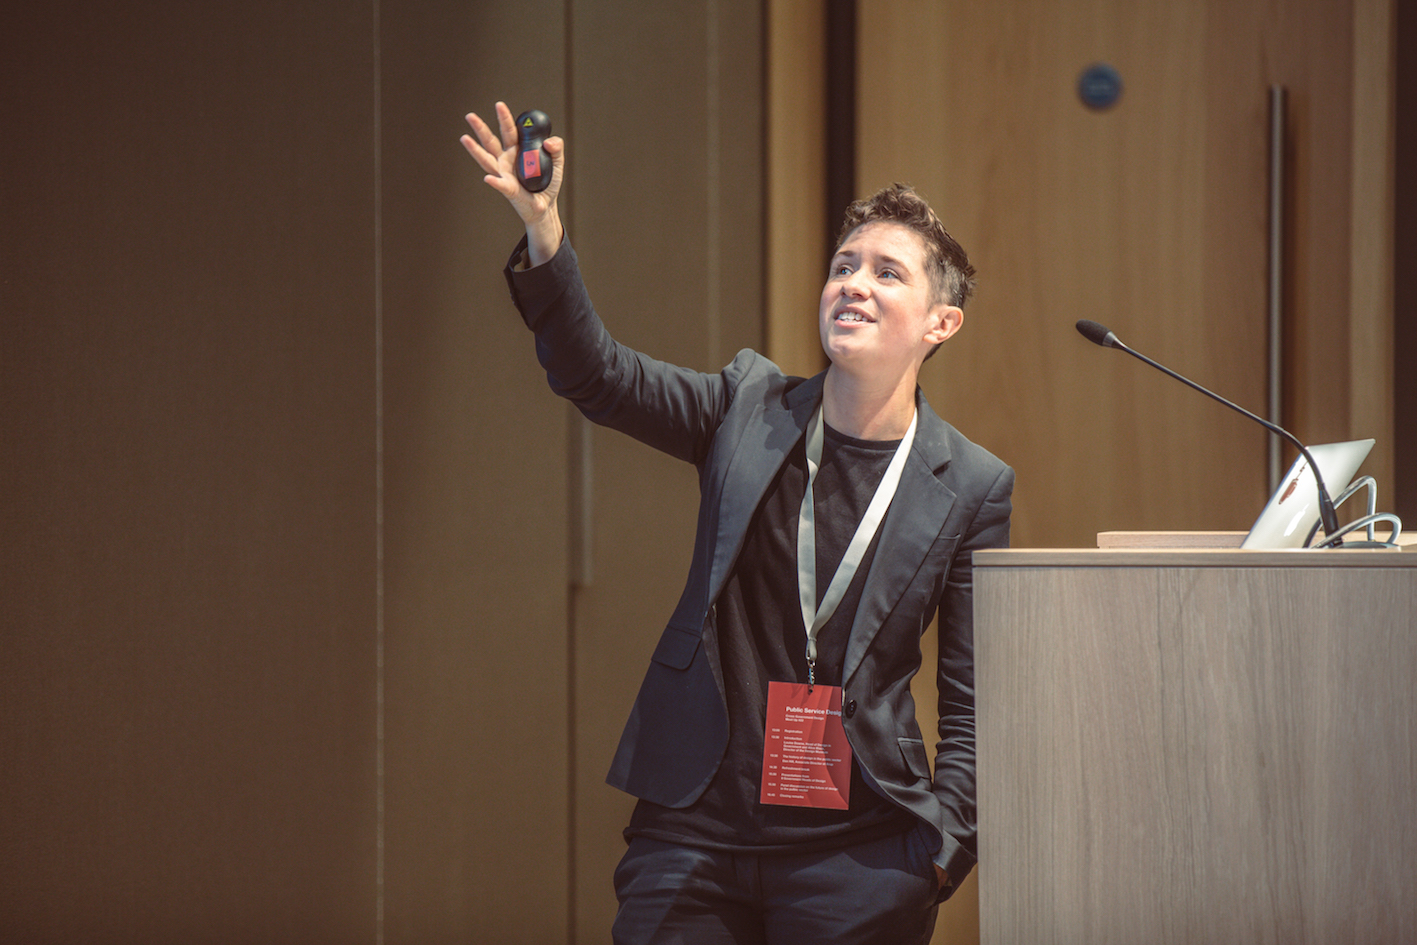 Lou standing at a lectern and gesturing at a screen